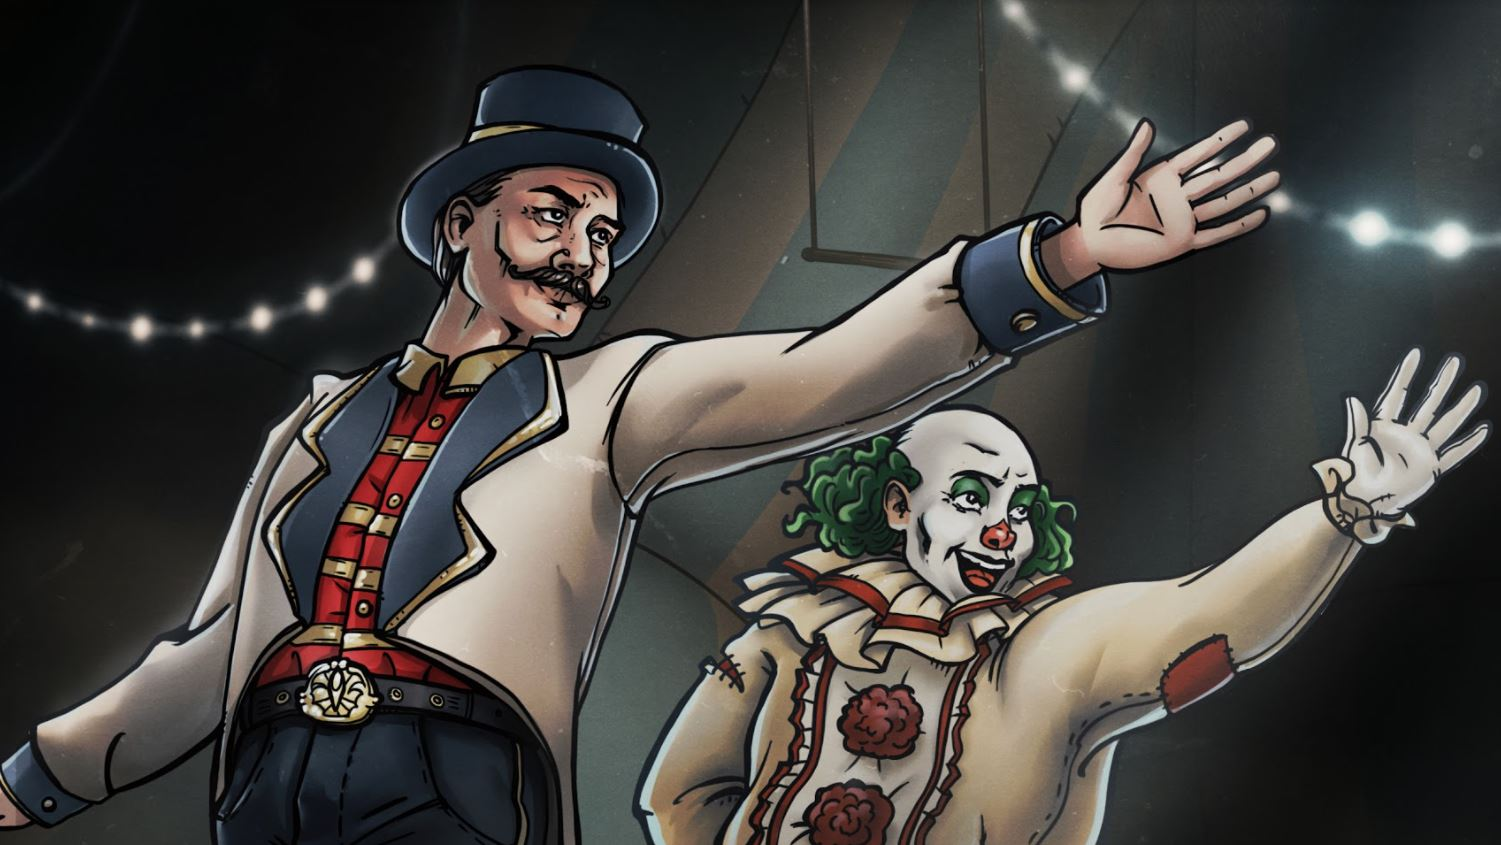 card-battler-the-amazing-american-circus-pushed-back-to-august-12-release-on-ps5-and-ps4